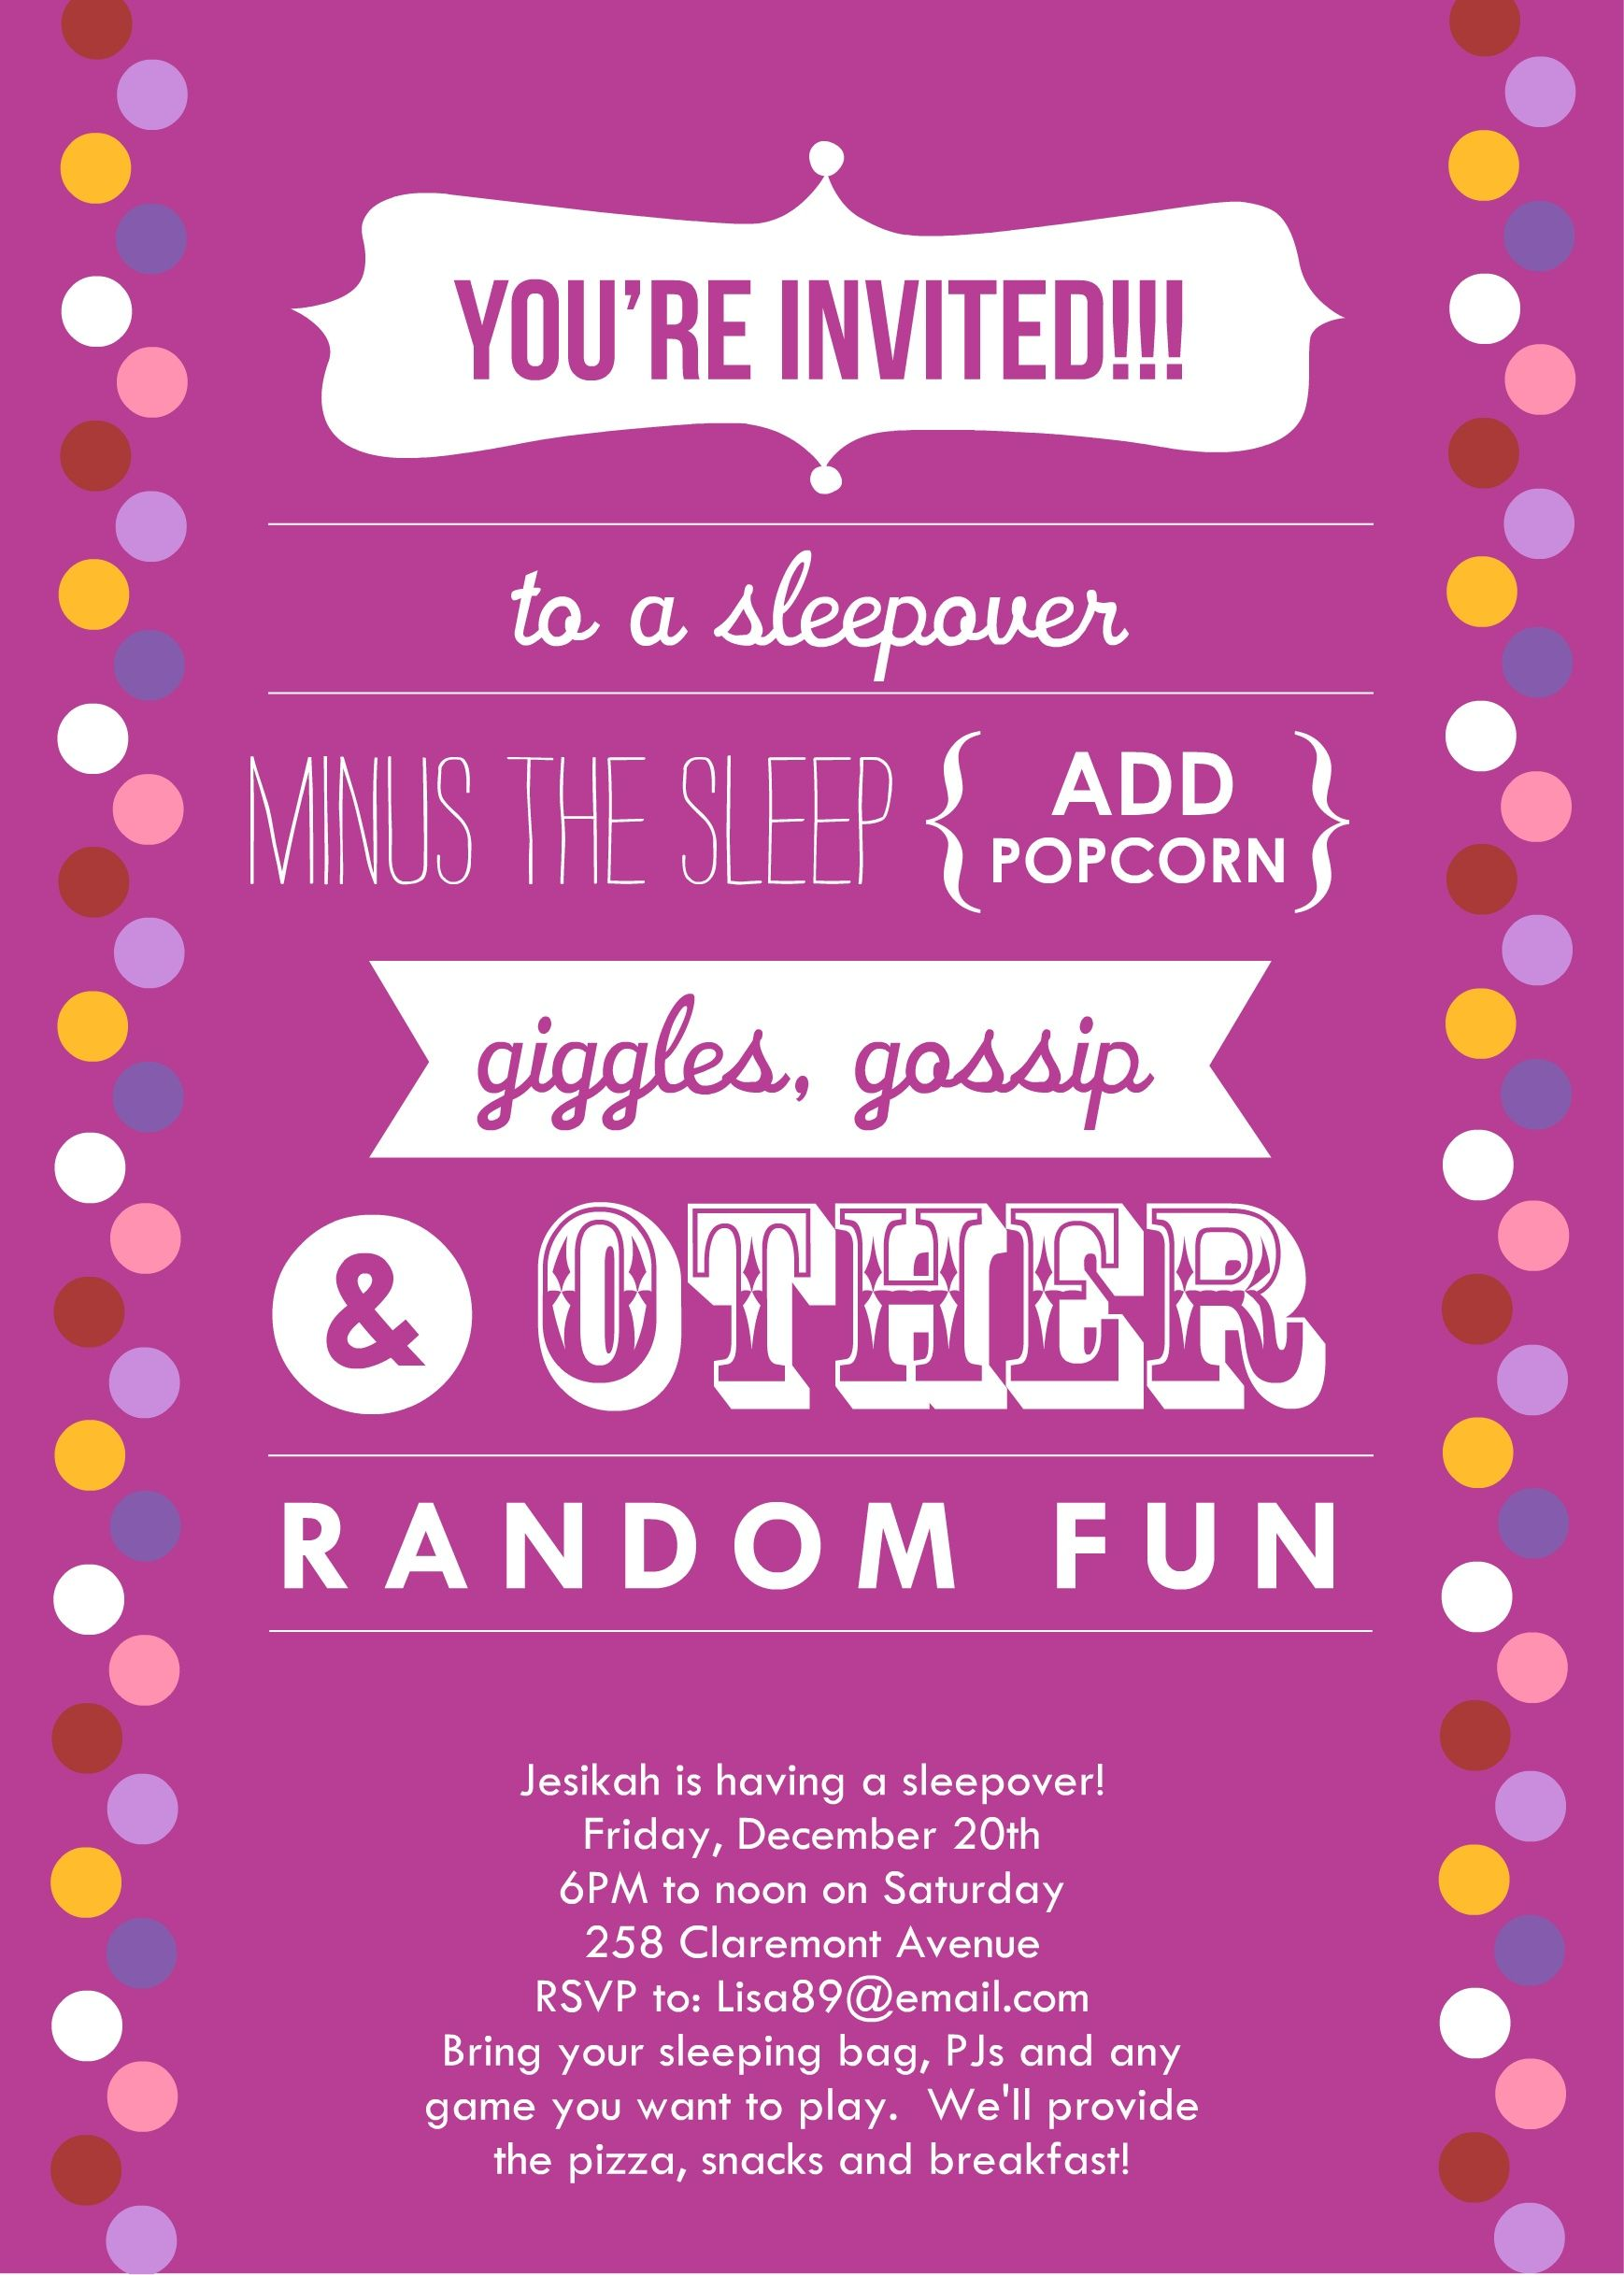 Sleepover Invitations | Announce It by: Alicia F- http://announceit ...